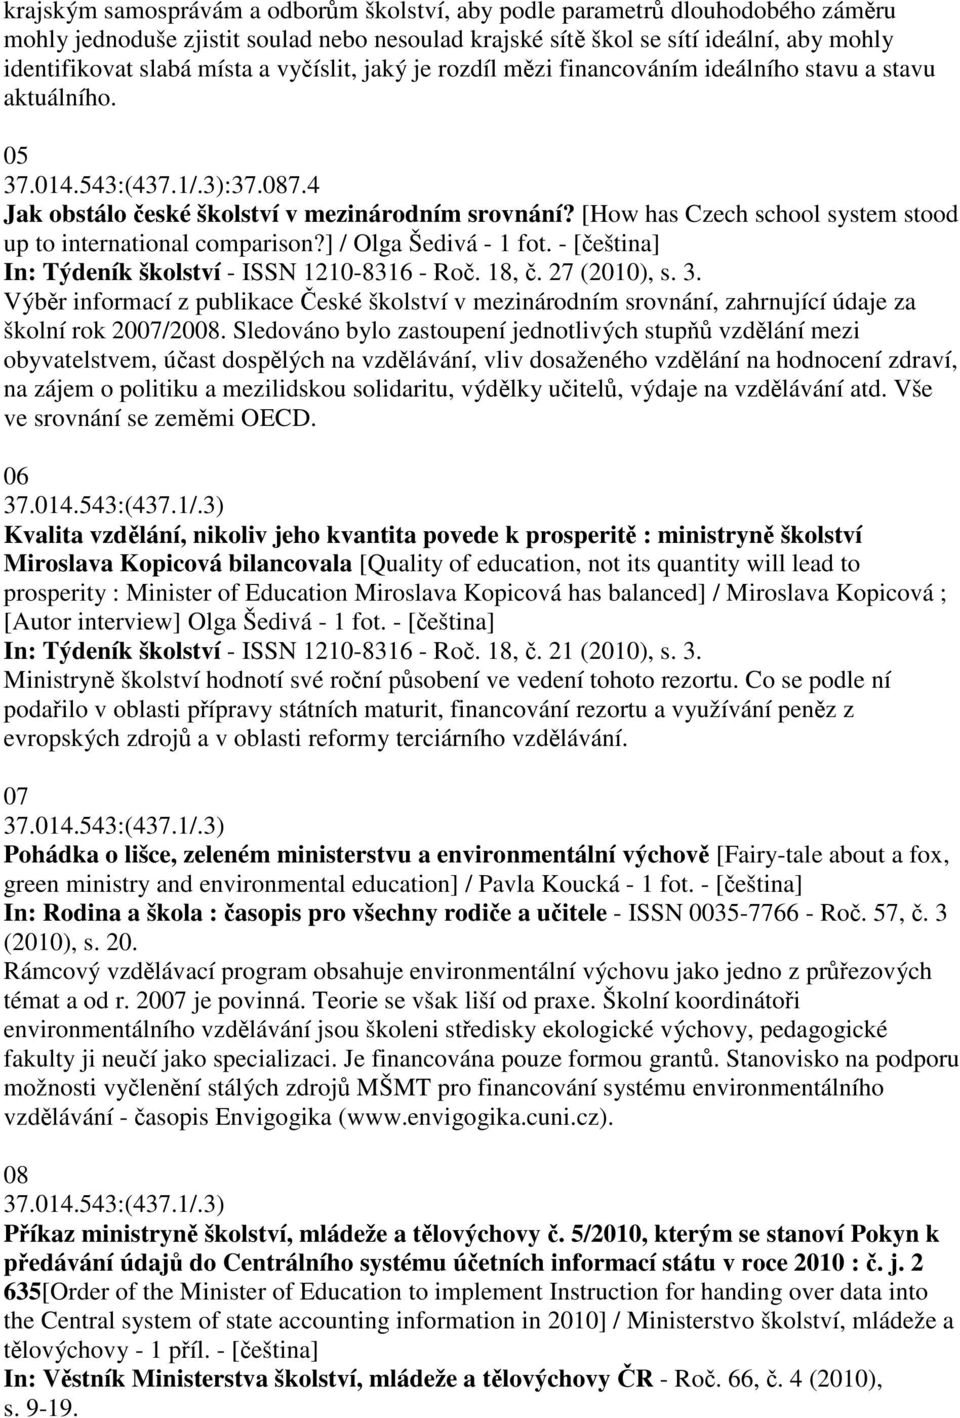 [How has Czech school system stood up to international comparison?] / Olga Šedivá - 1 fot. - [eština] In: Týdeník školství - ISSN 1210-8316 - Ro. 18,. 27 (2010), s. 3.